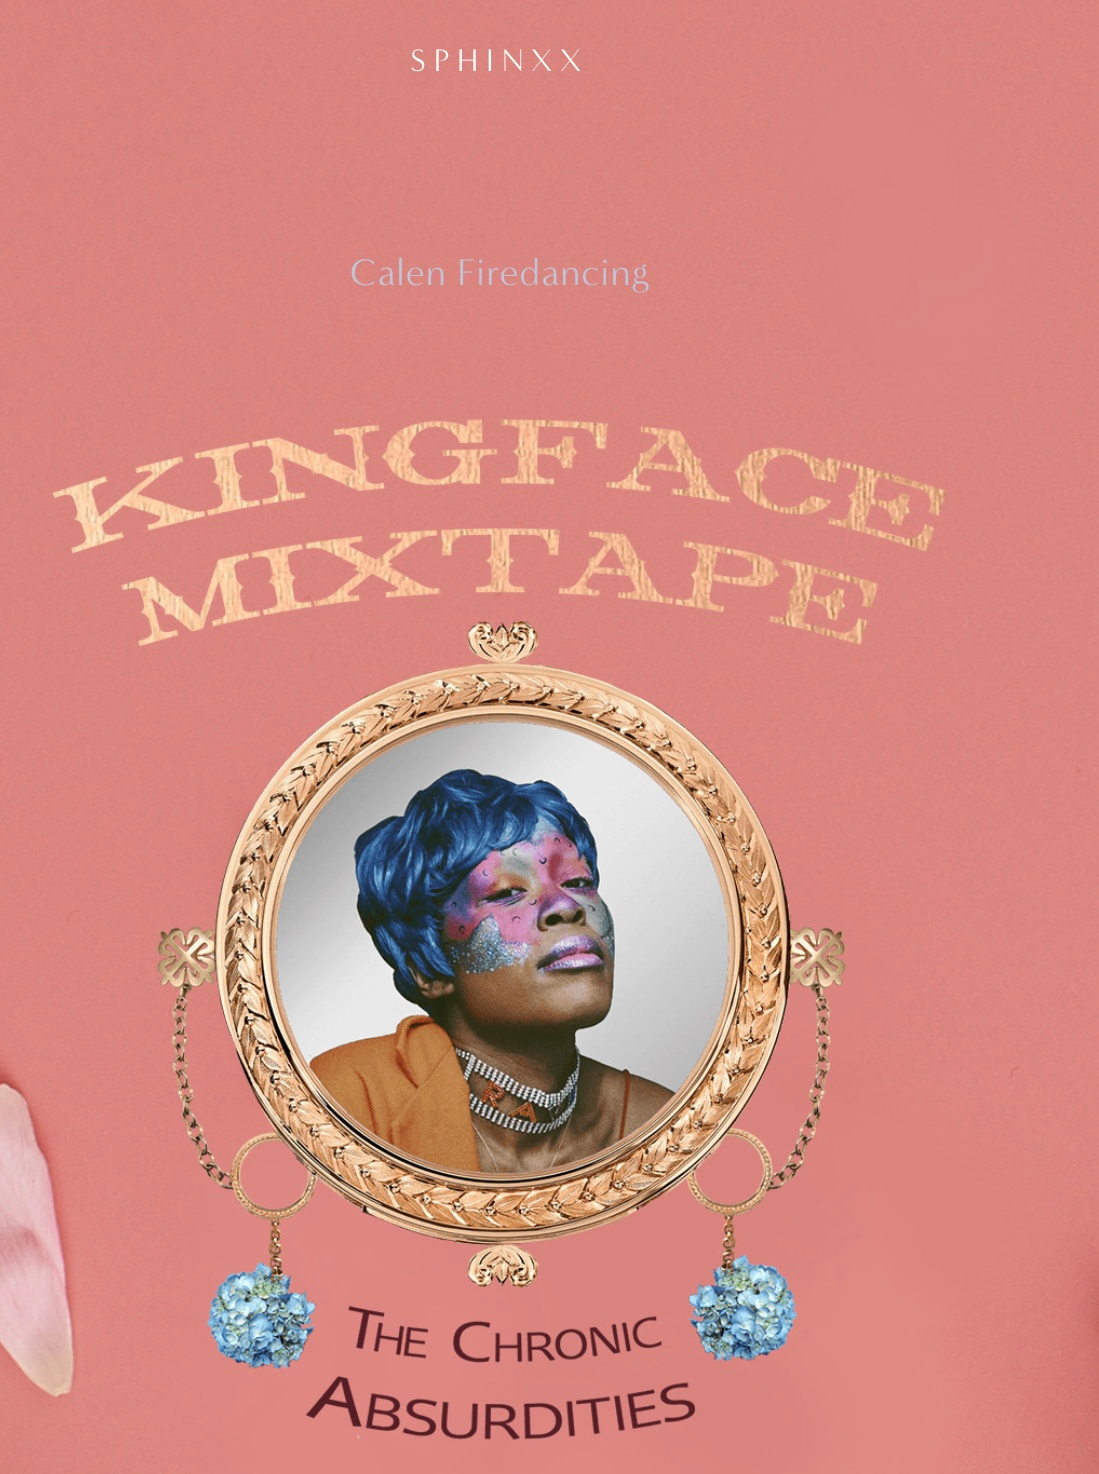 Kingface Mixtape: a new SPHINXX essay series by Calen Firedancing. - Follow one Black queer poet's trip through the past, present, and future. our afflictions are chronically absurd; our poetics must be too.Read the full series now.